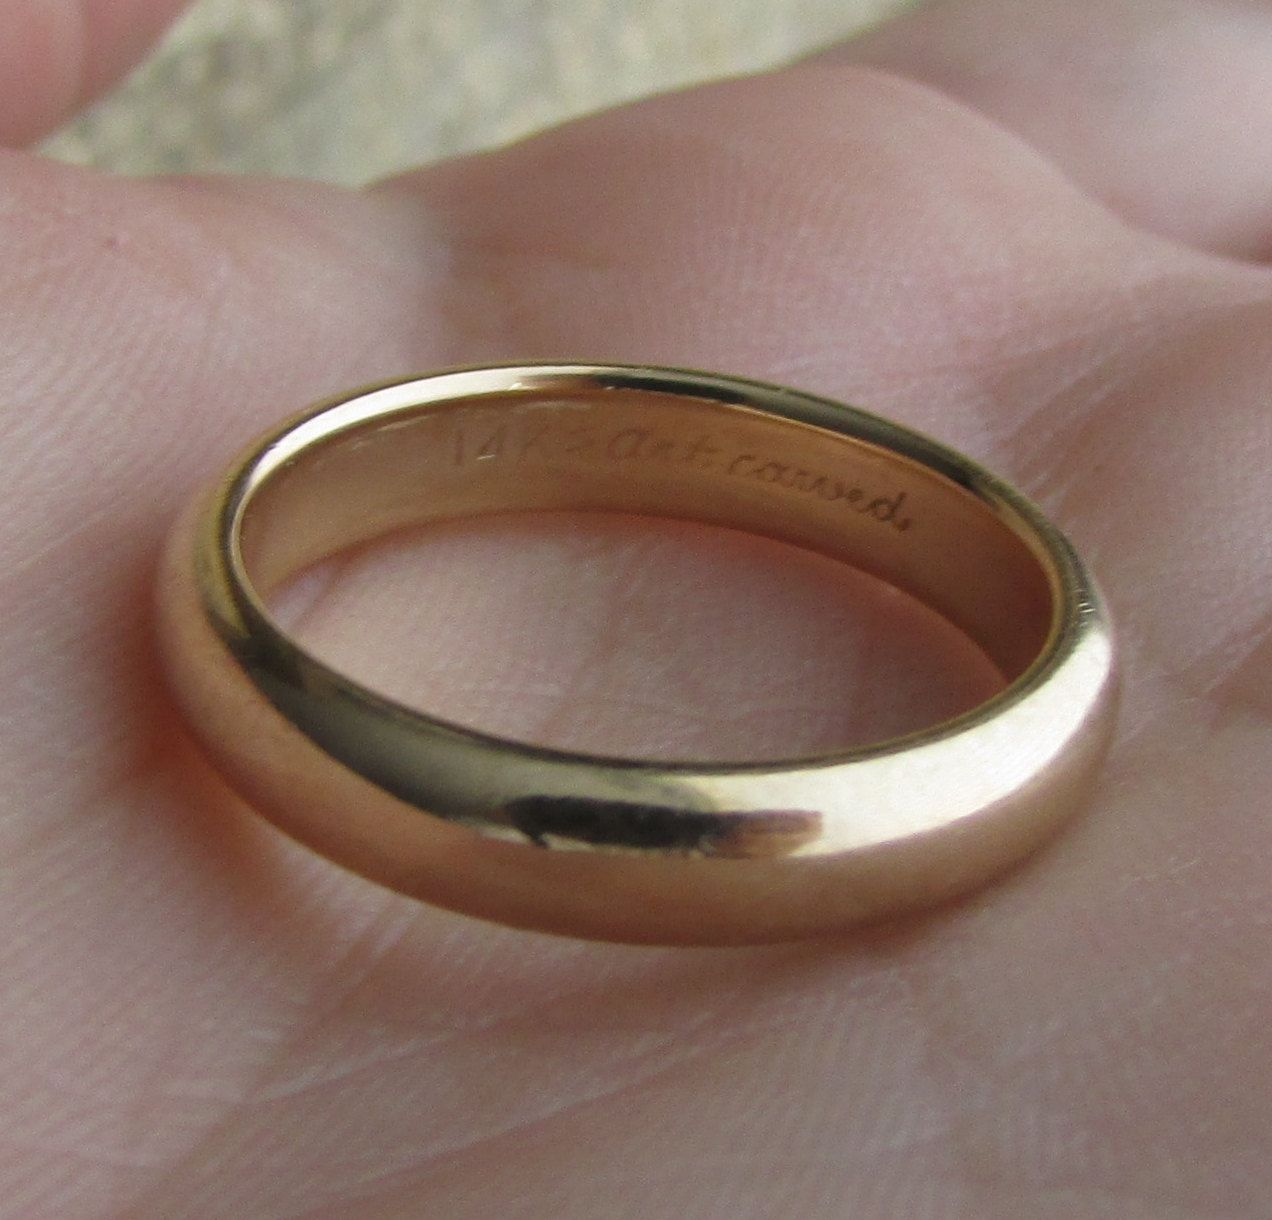 edbb56dbd98df J.R. Wood and Sons / Artcarved Vintage 1950's Solid 14k Yellow Gold ...